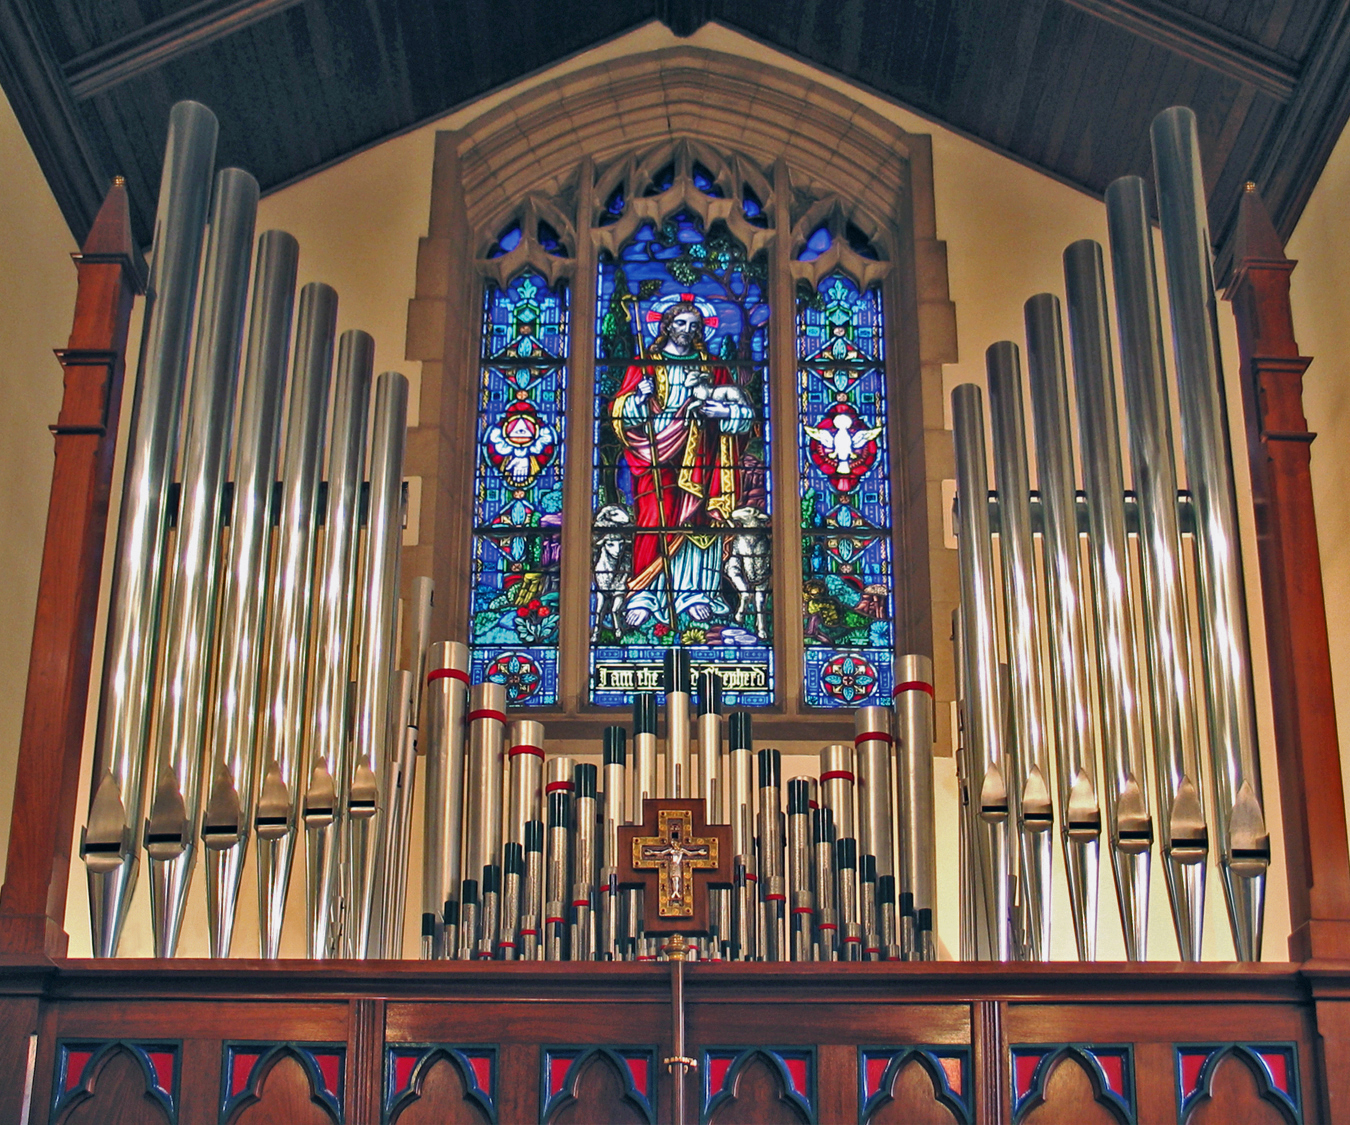 Sebastian Glück Organ, Op. 6 (1995) at Christ Church (Lutheran) - New York City (photo: Gluck New York)